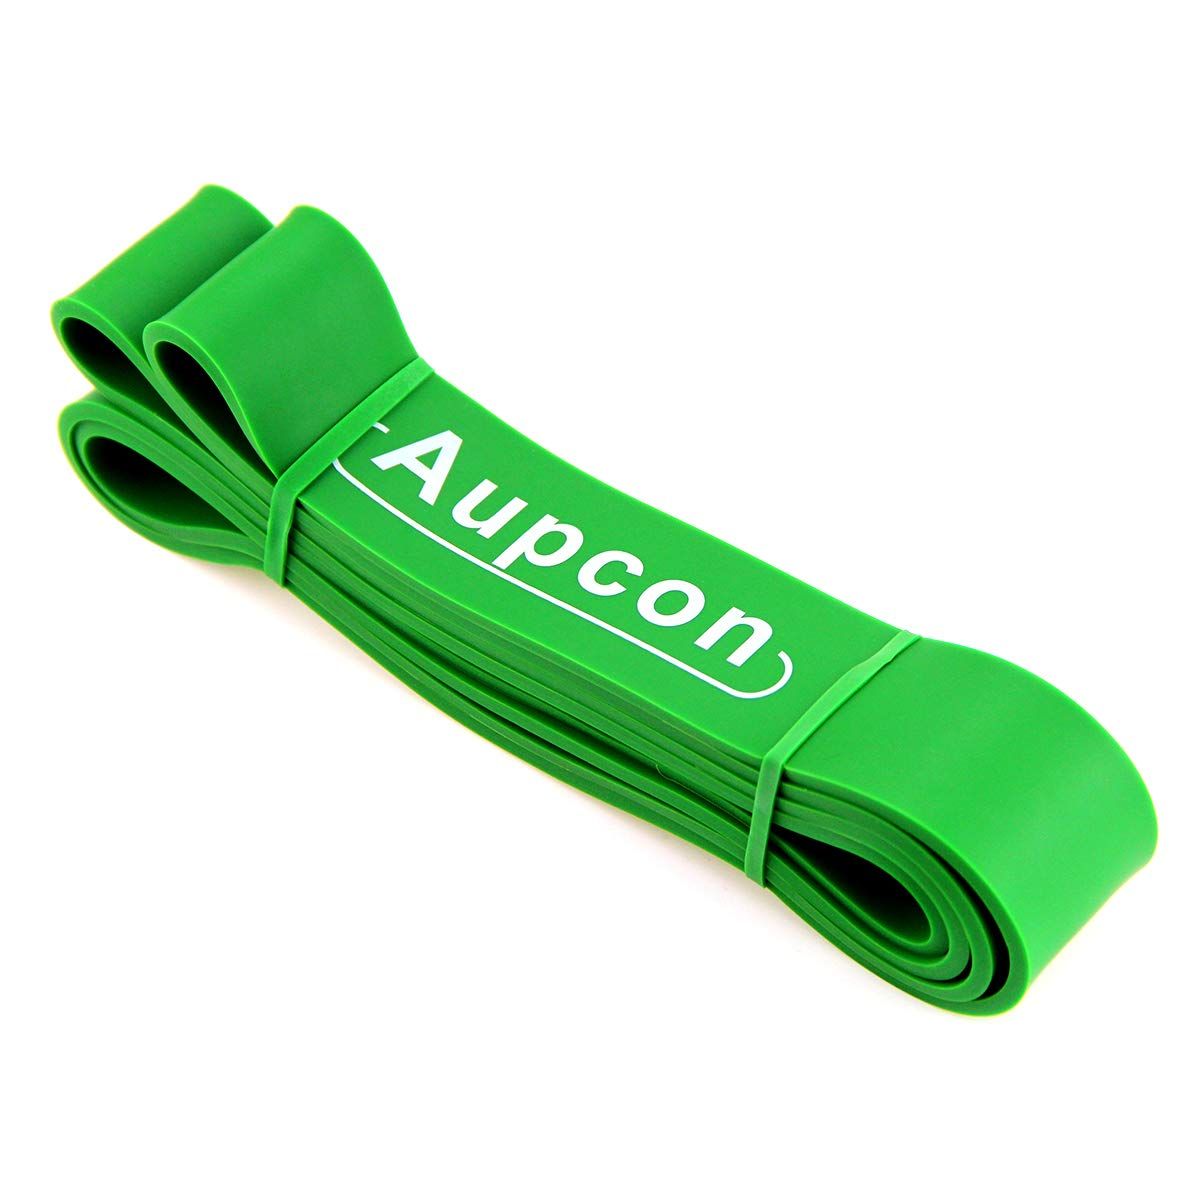 AUPCON Pull Up Assist Bands Resistance Band Exercise Bands Home Fitness, Stretching and Assistance Training Band (#4 Single Band, Green (50-125 lbs))